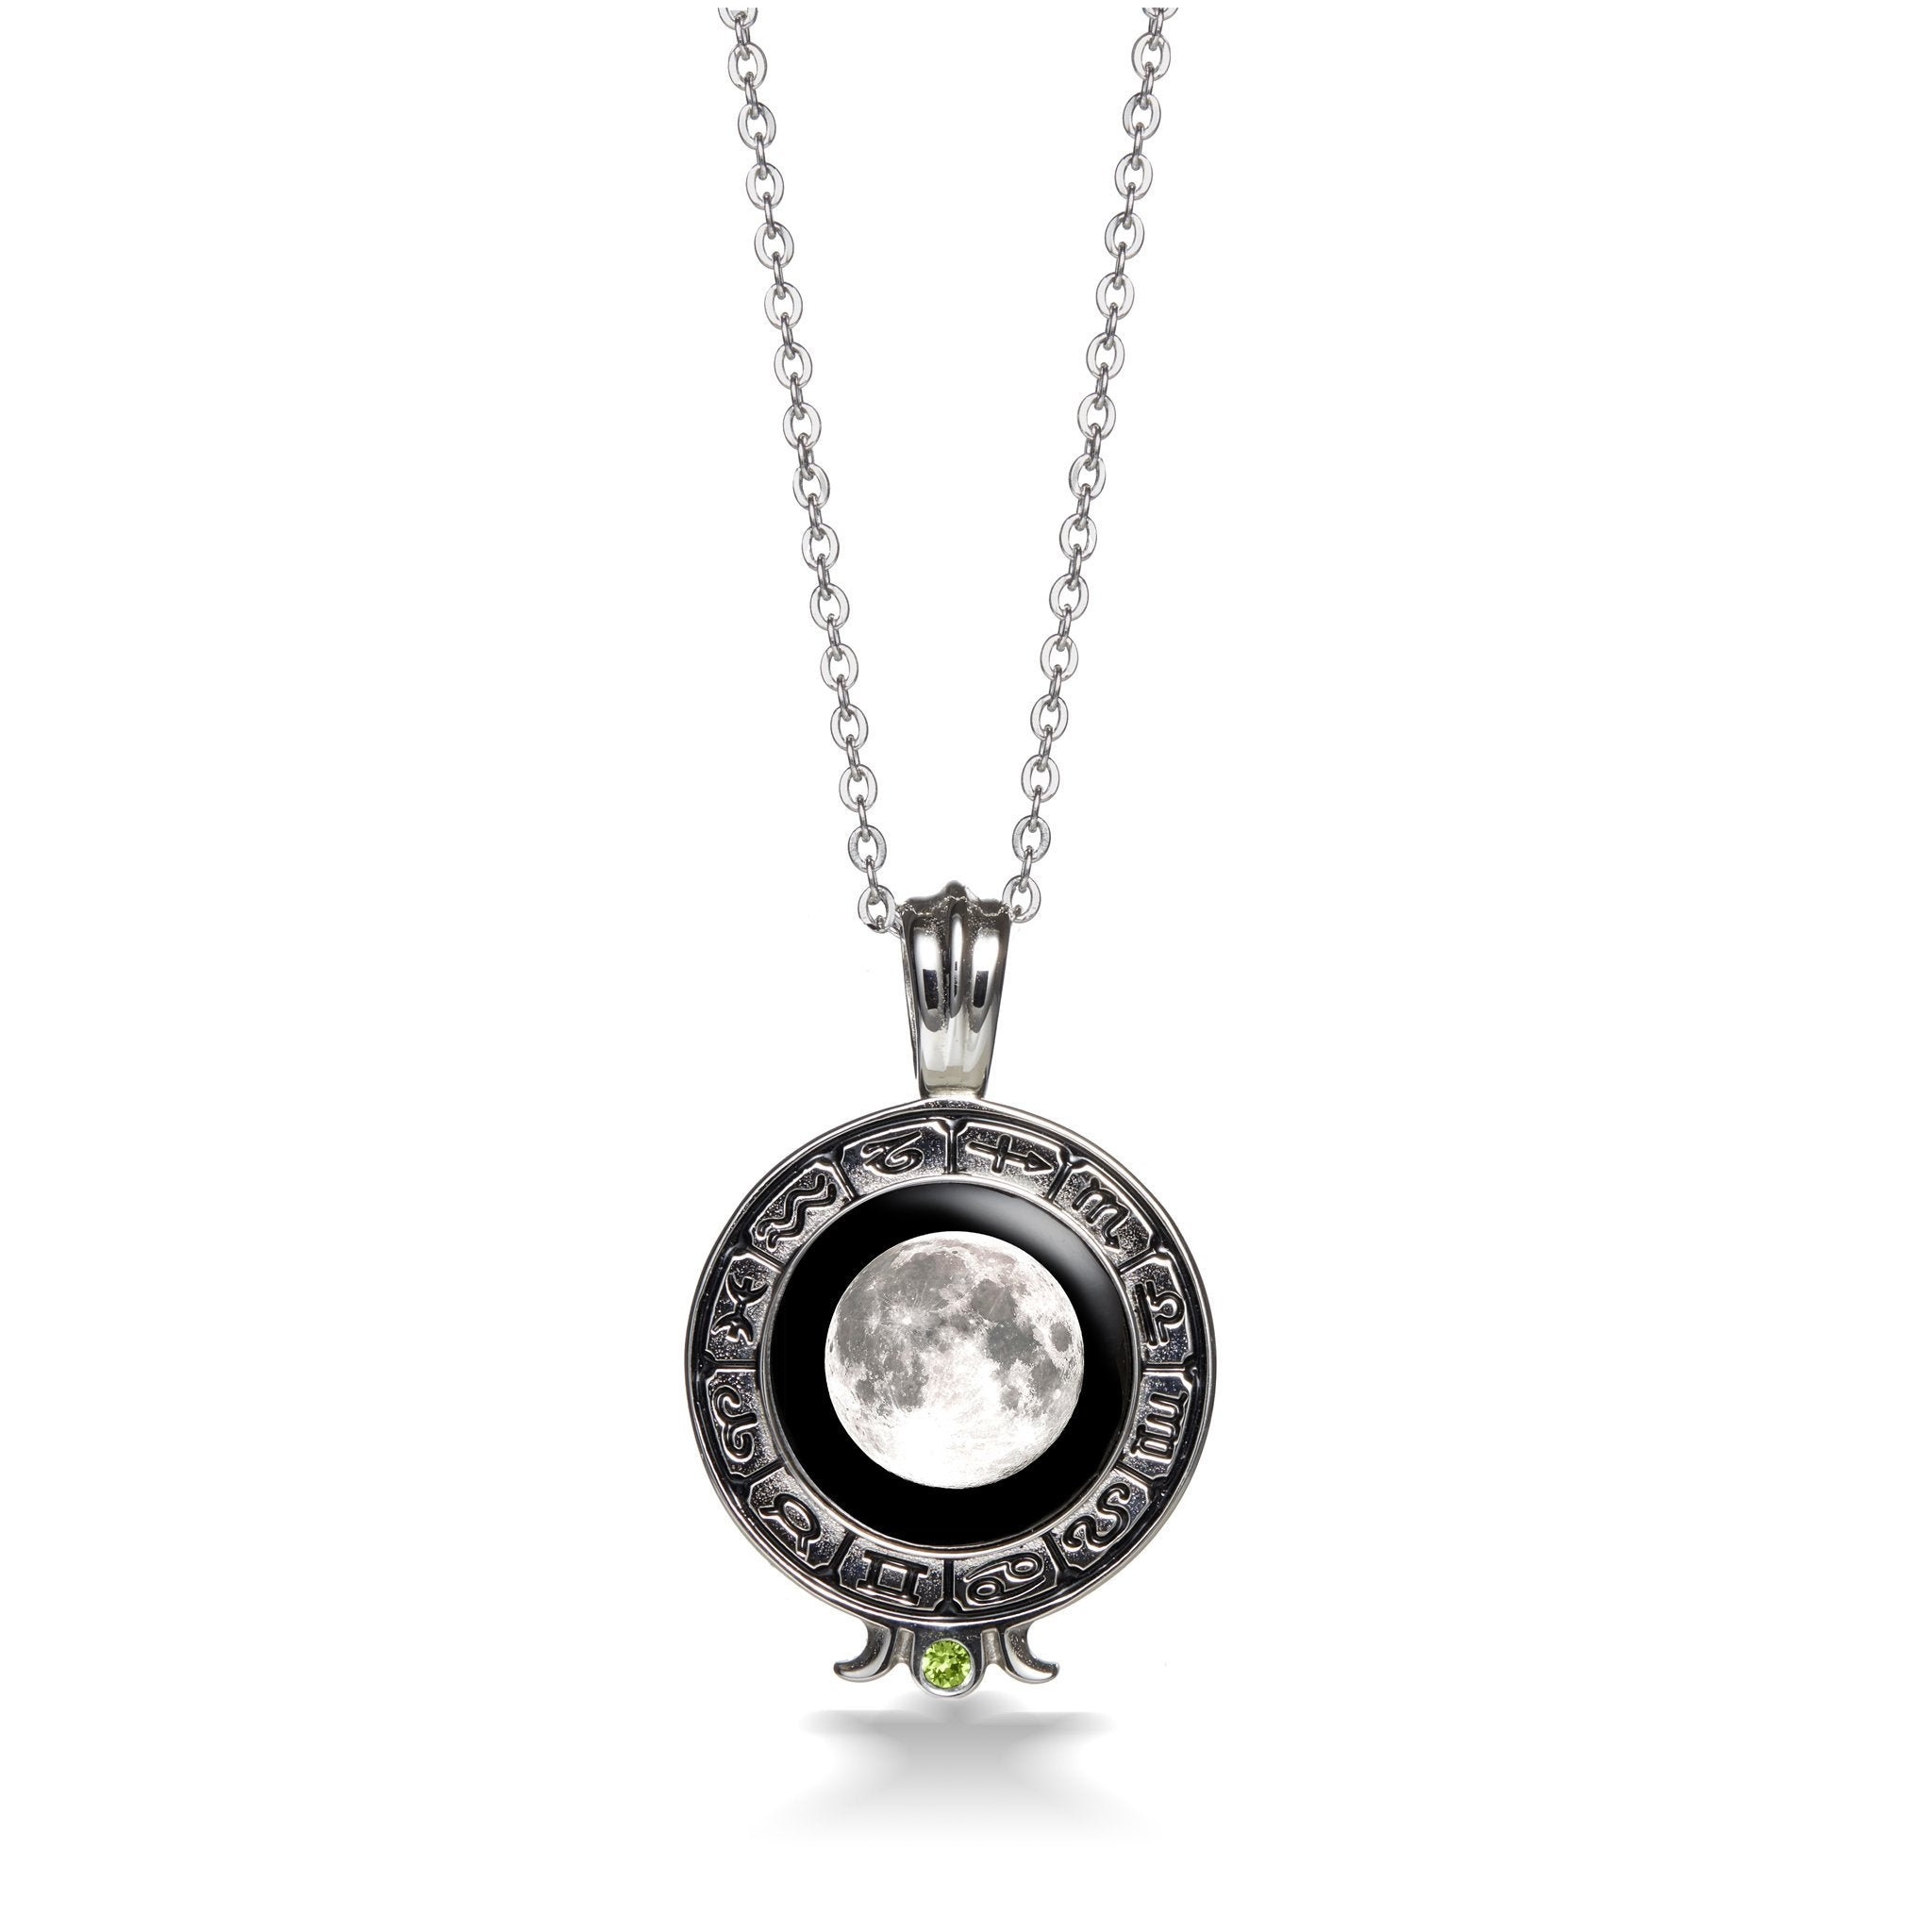 Birthstone Zodiac Necklace in Stainless Steel